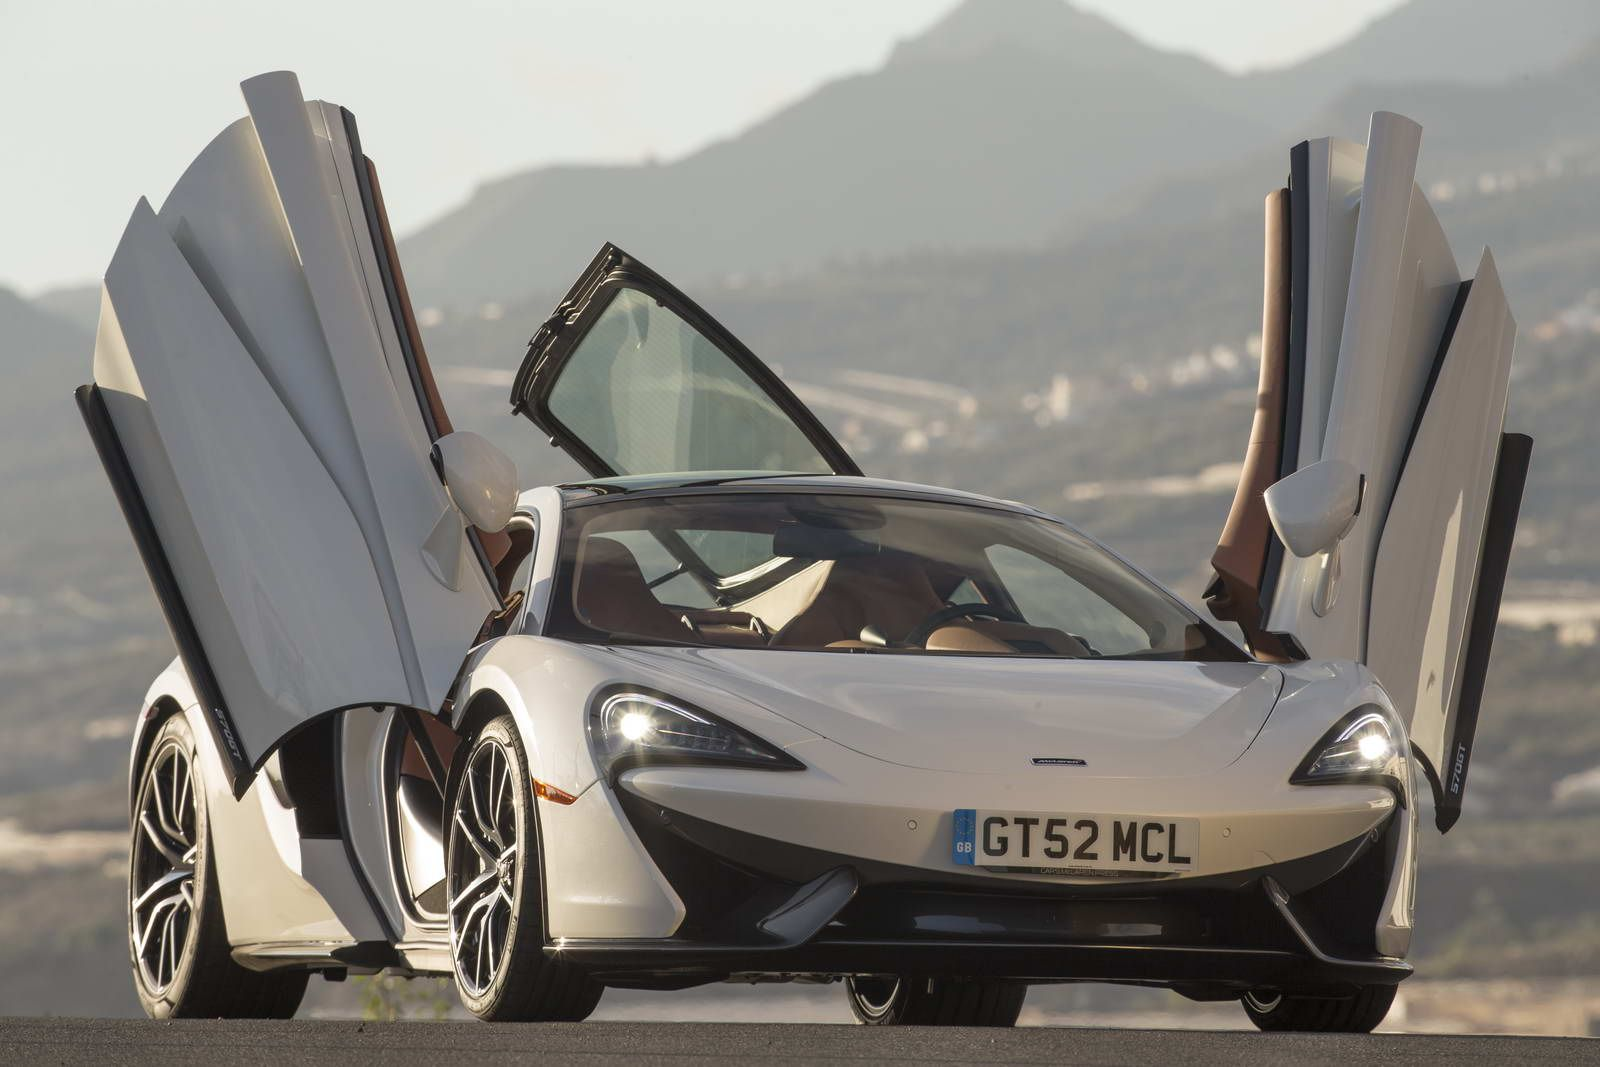 We Drive The New McLaren GT Does It Push All The Right - We drive fast cars